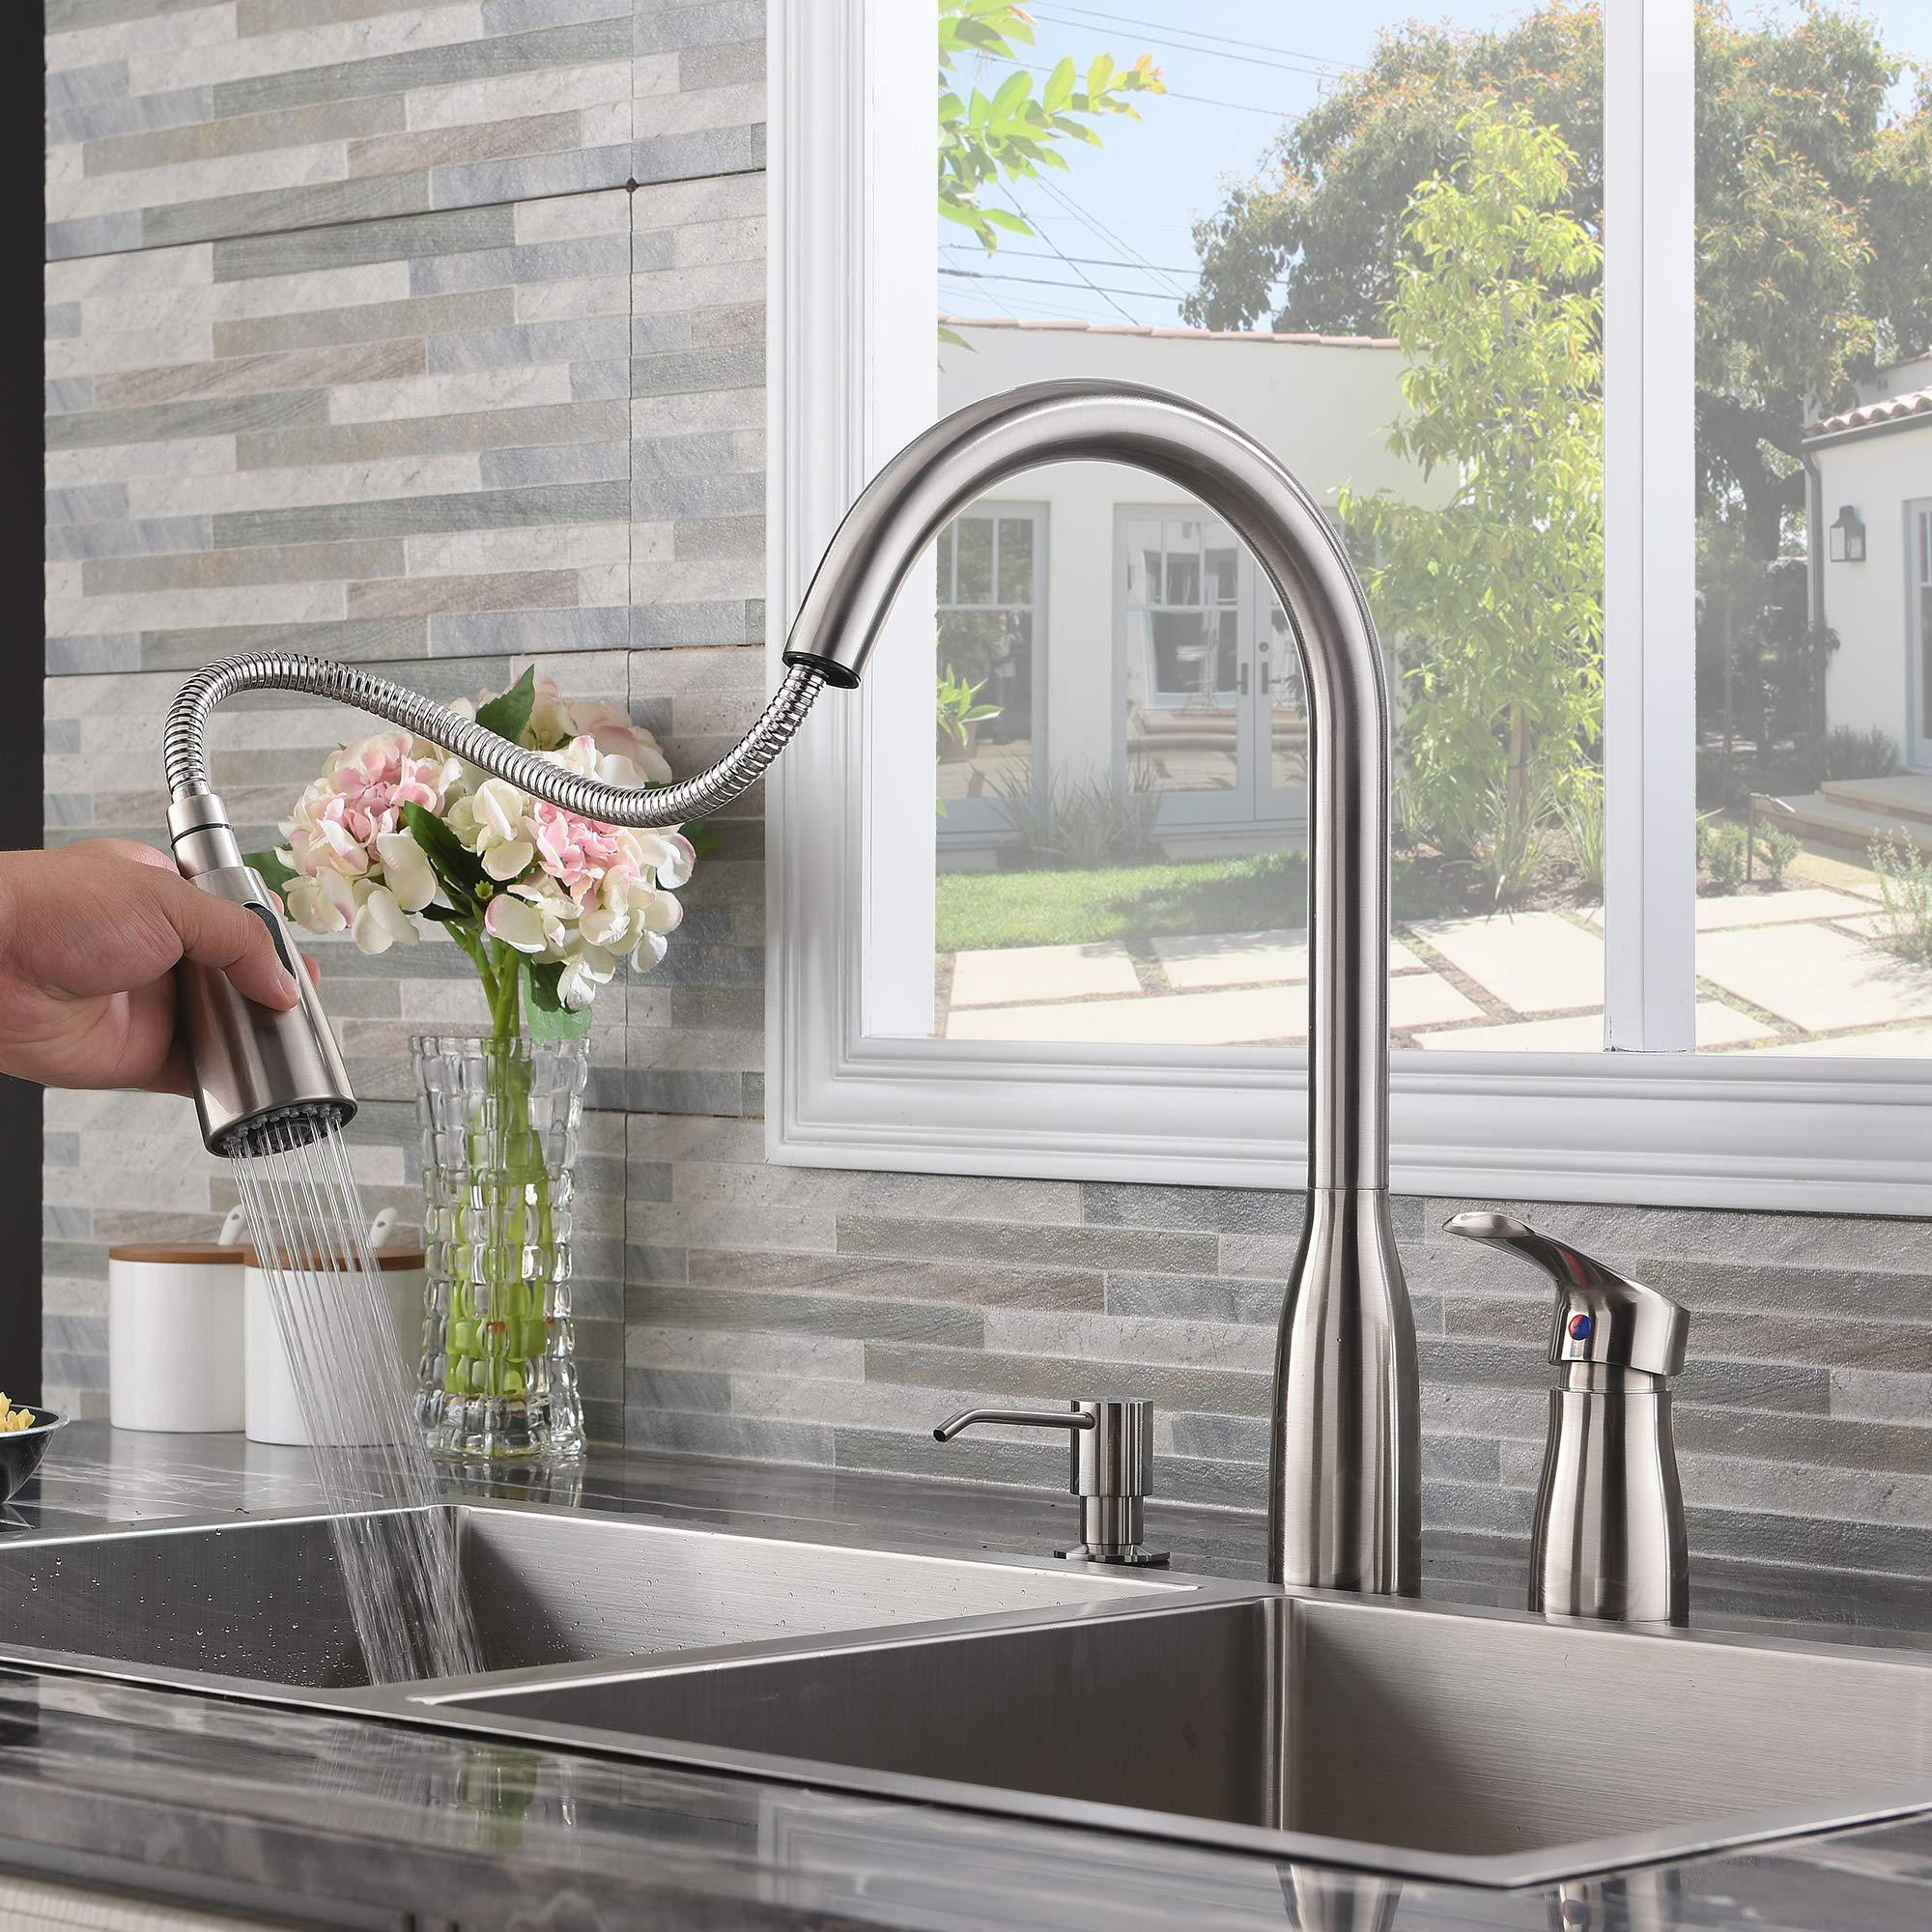 Hotis 3 Hole Pull Out Prep Sprayer Stainless Steel Single Handle Pull Down Kitchen Faucet, Brushed Nickel Kitchen Sink Faucet with Soap Dispenser by HOTIS HOME (Image #6)